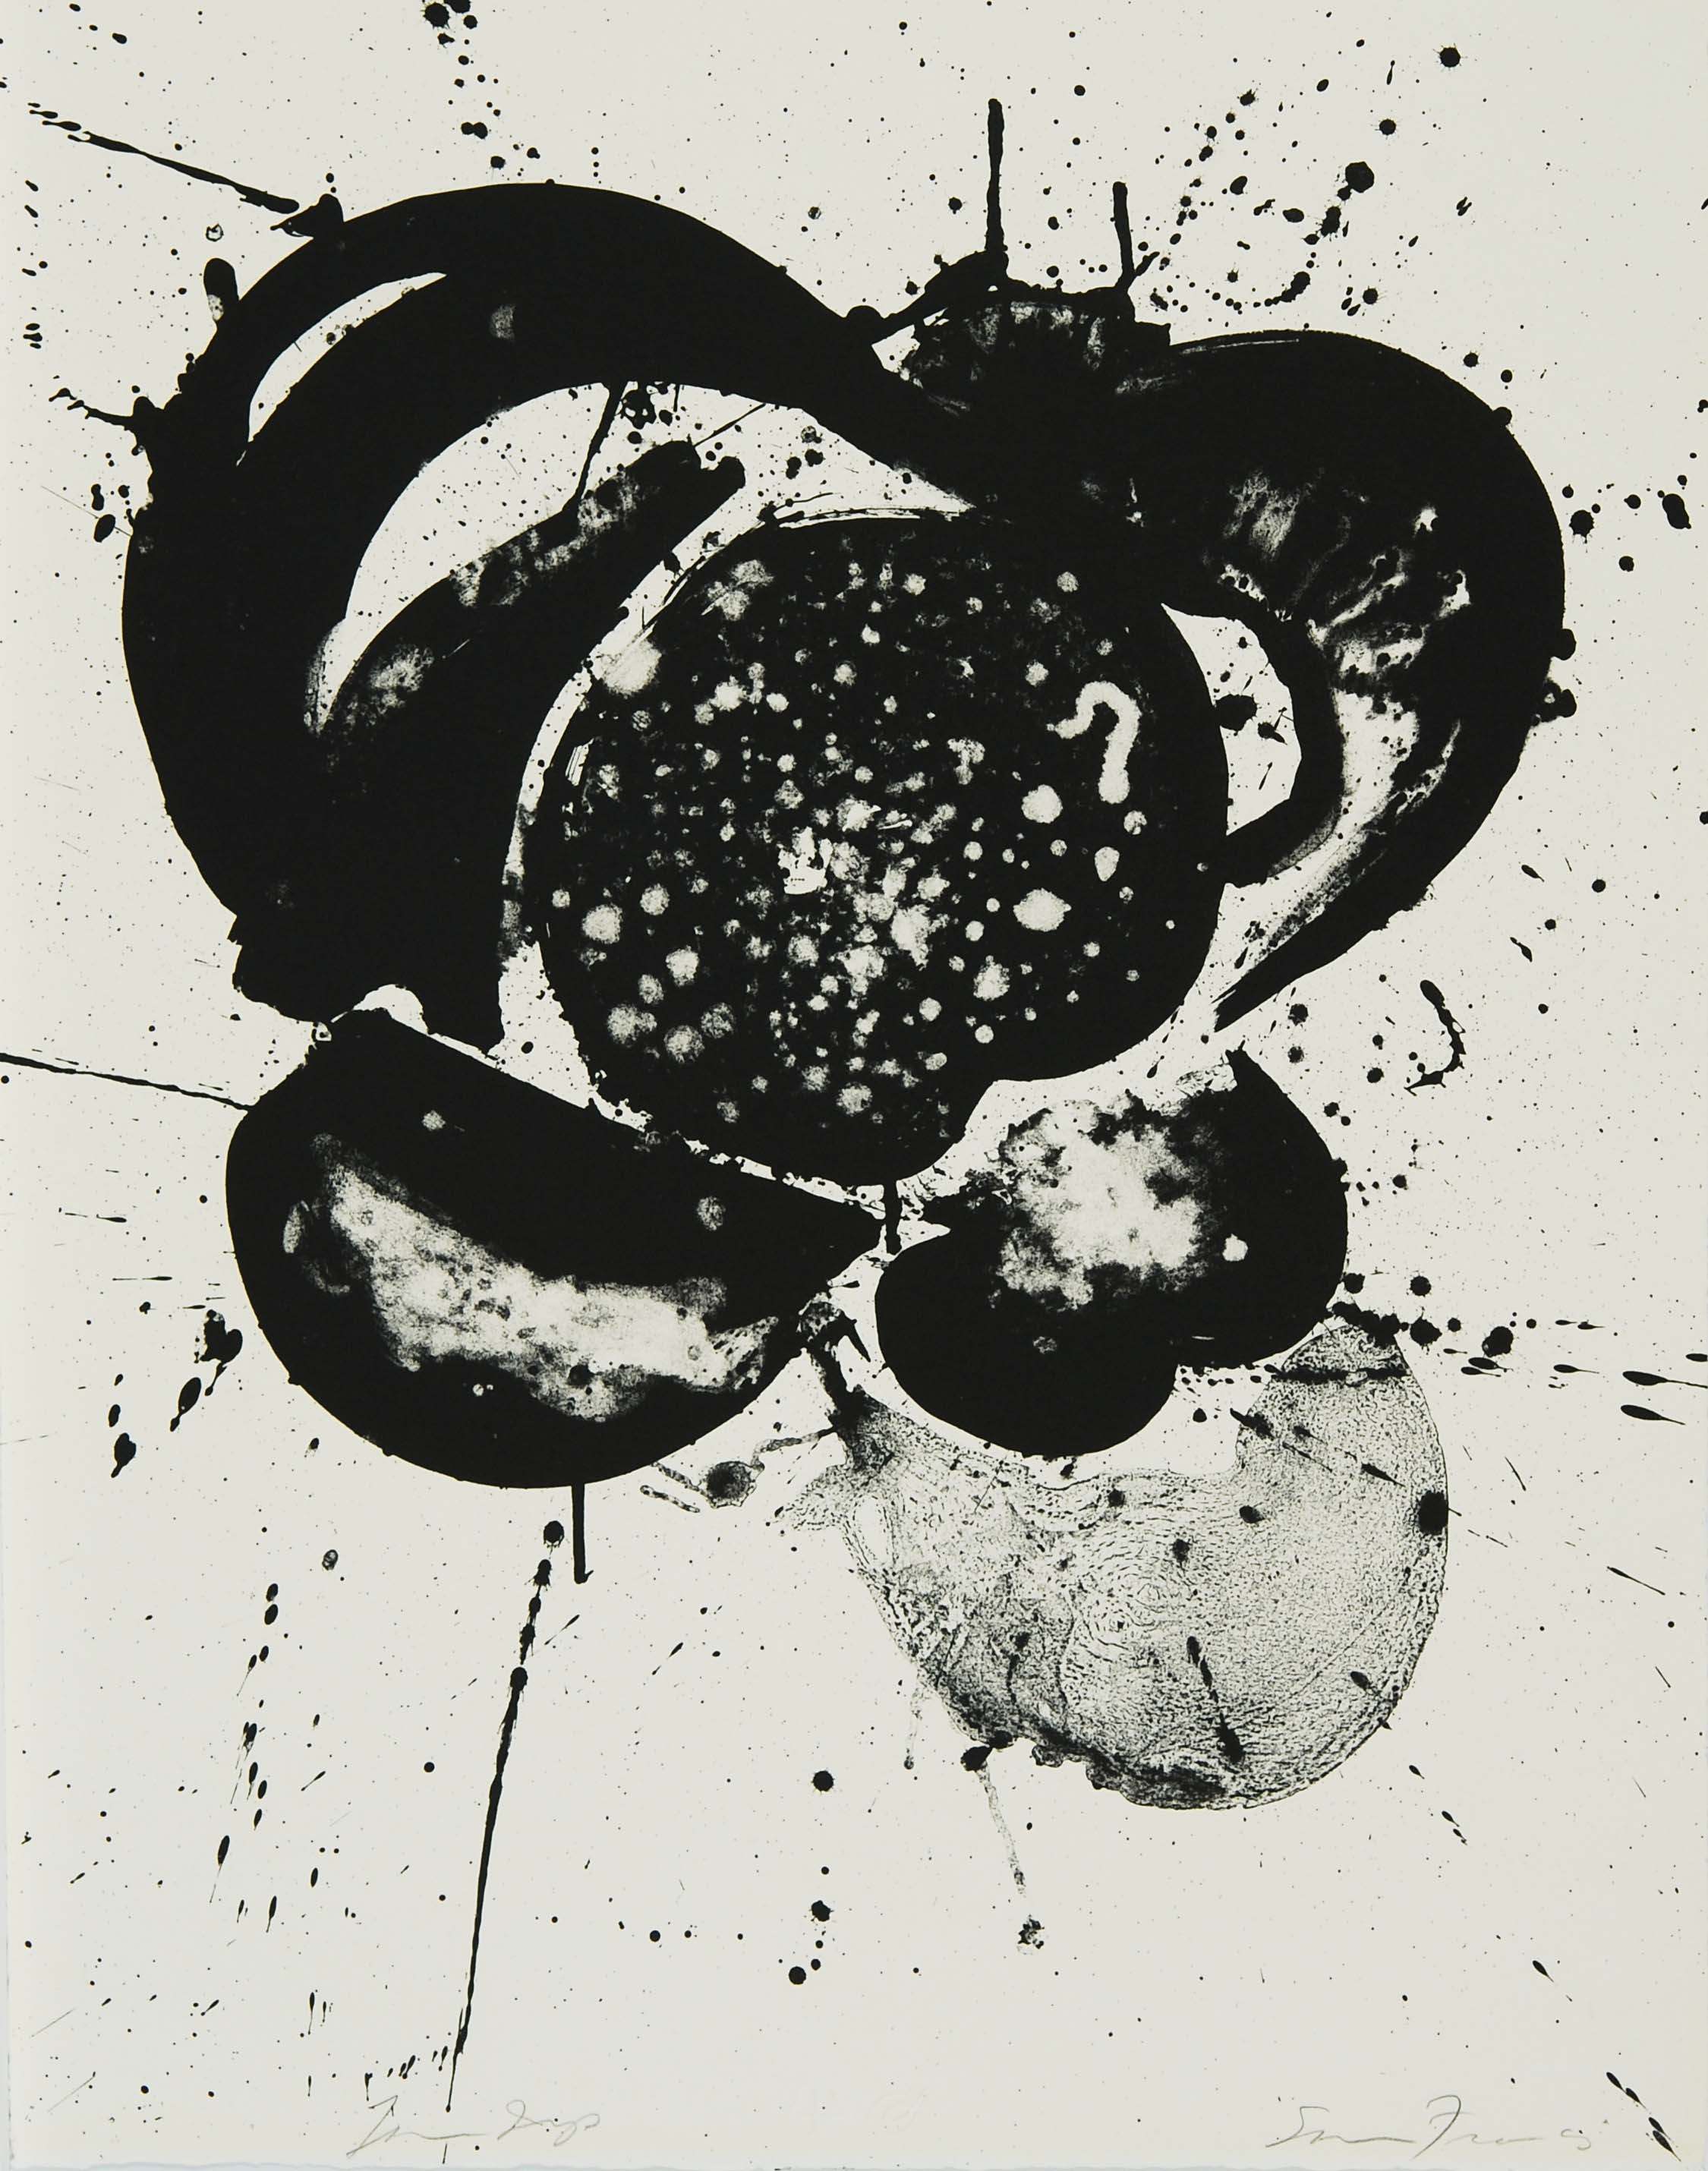 Sam Francis, Essai, March 27 - April 25, 1963